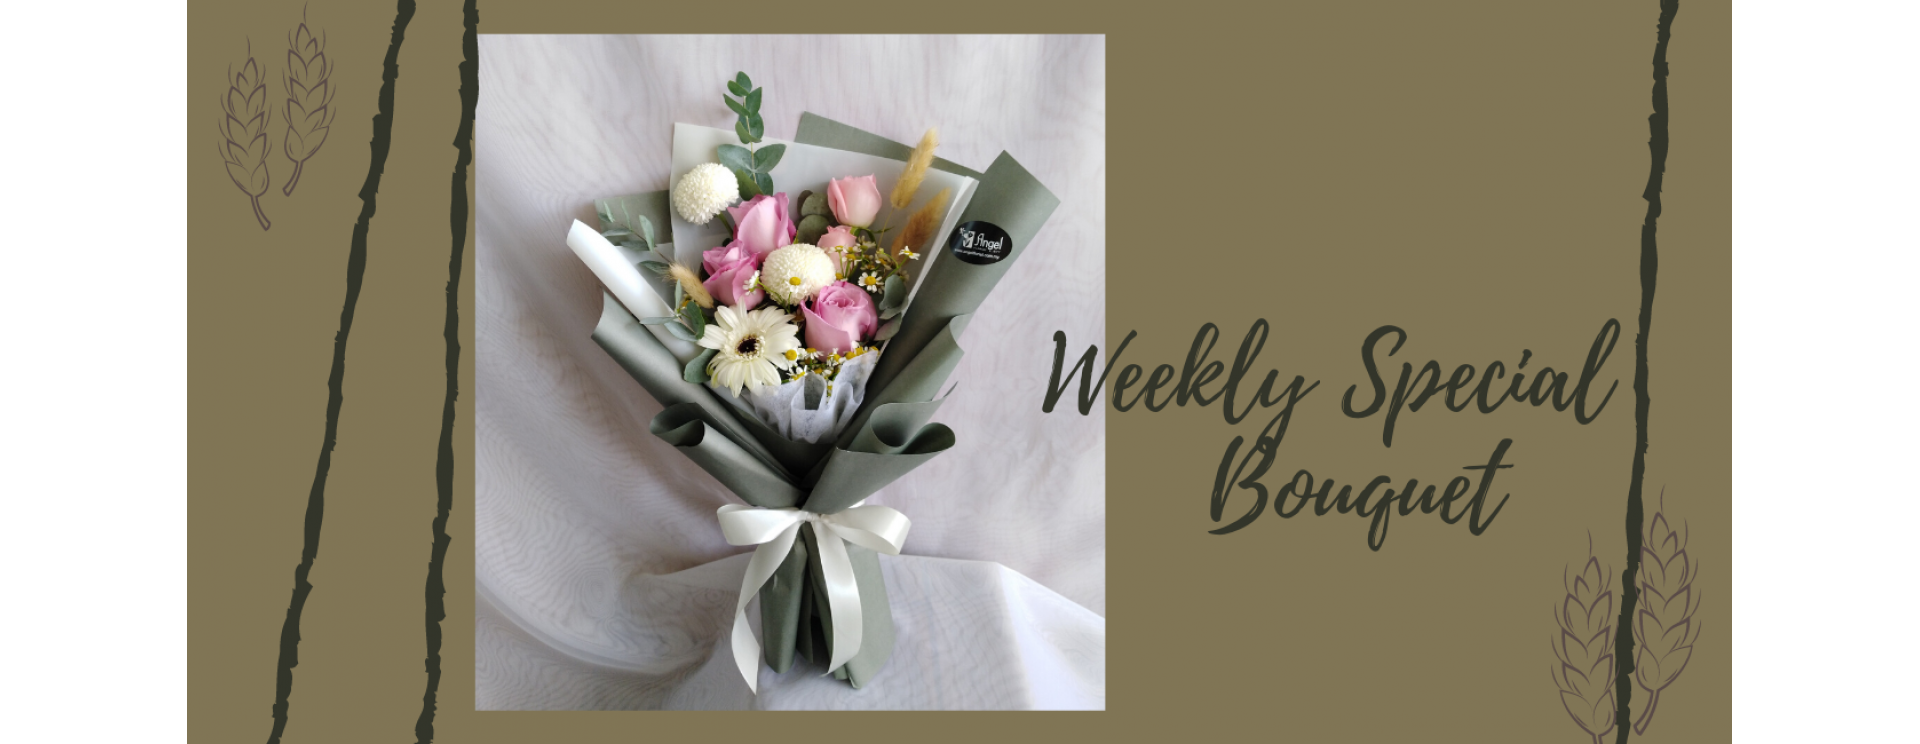 weekly special